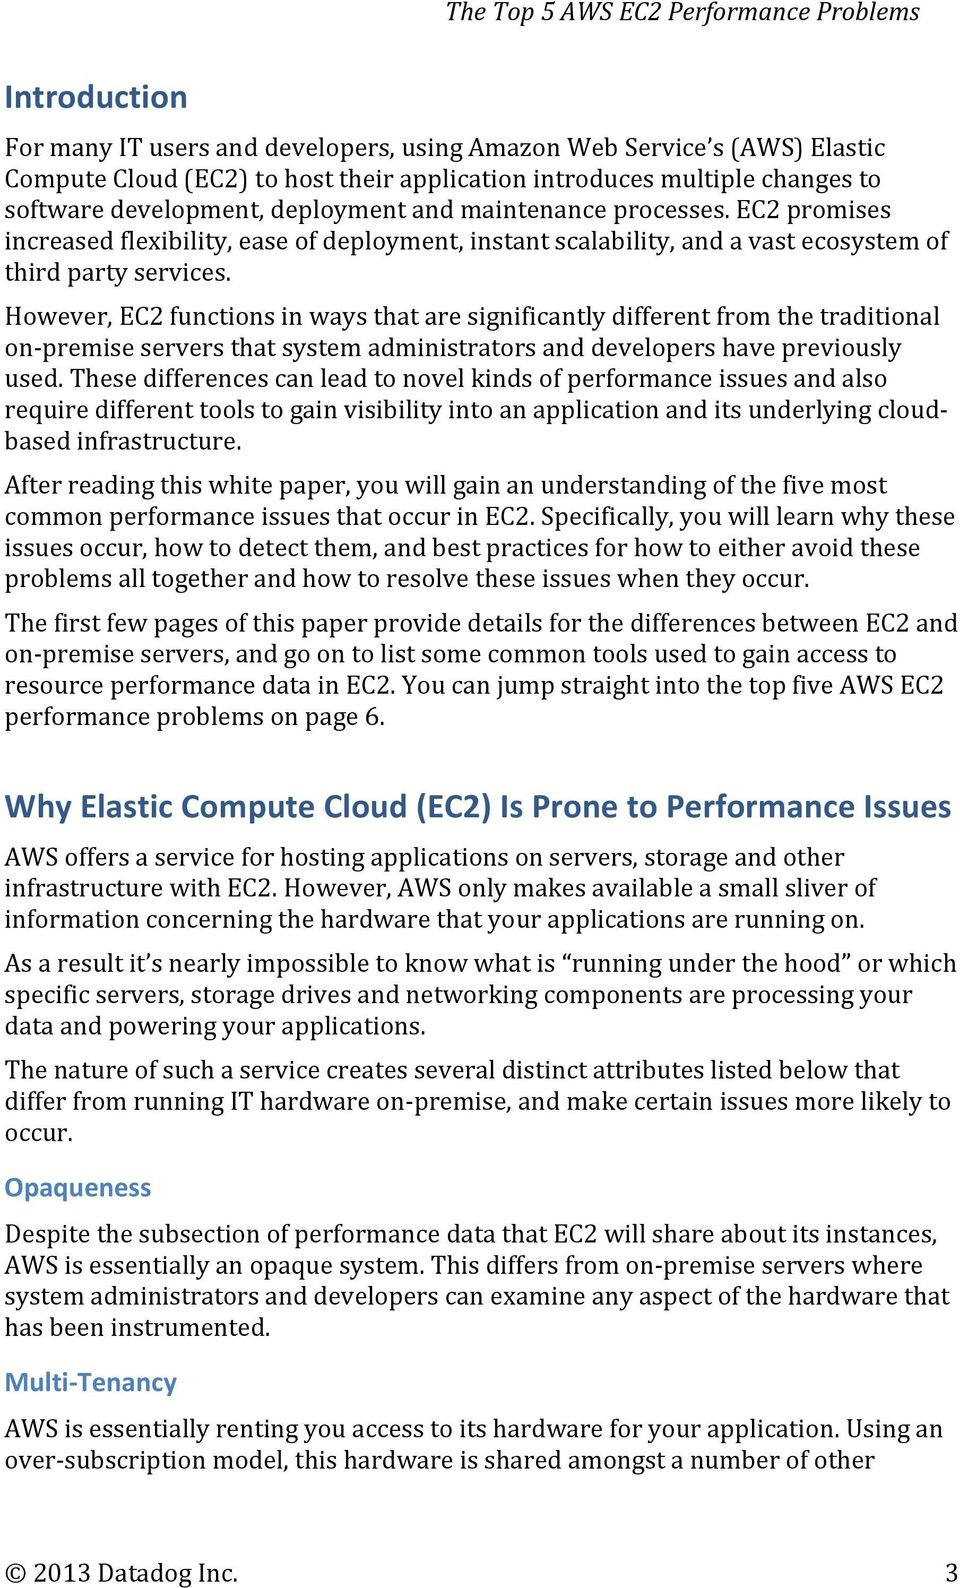 However, EC2 functions in ways that are significantly different from the traditional on-premise servers that system administrators and developers have previously used.